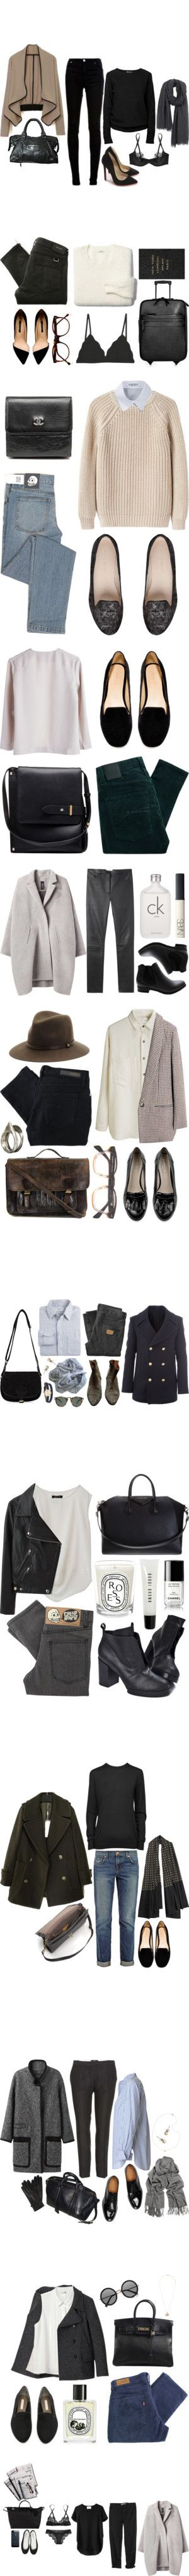 """""""New York in October"""" by katie-marieferguson ❤ liked on Polyvore"""